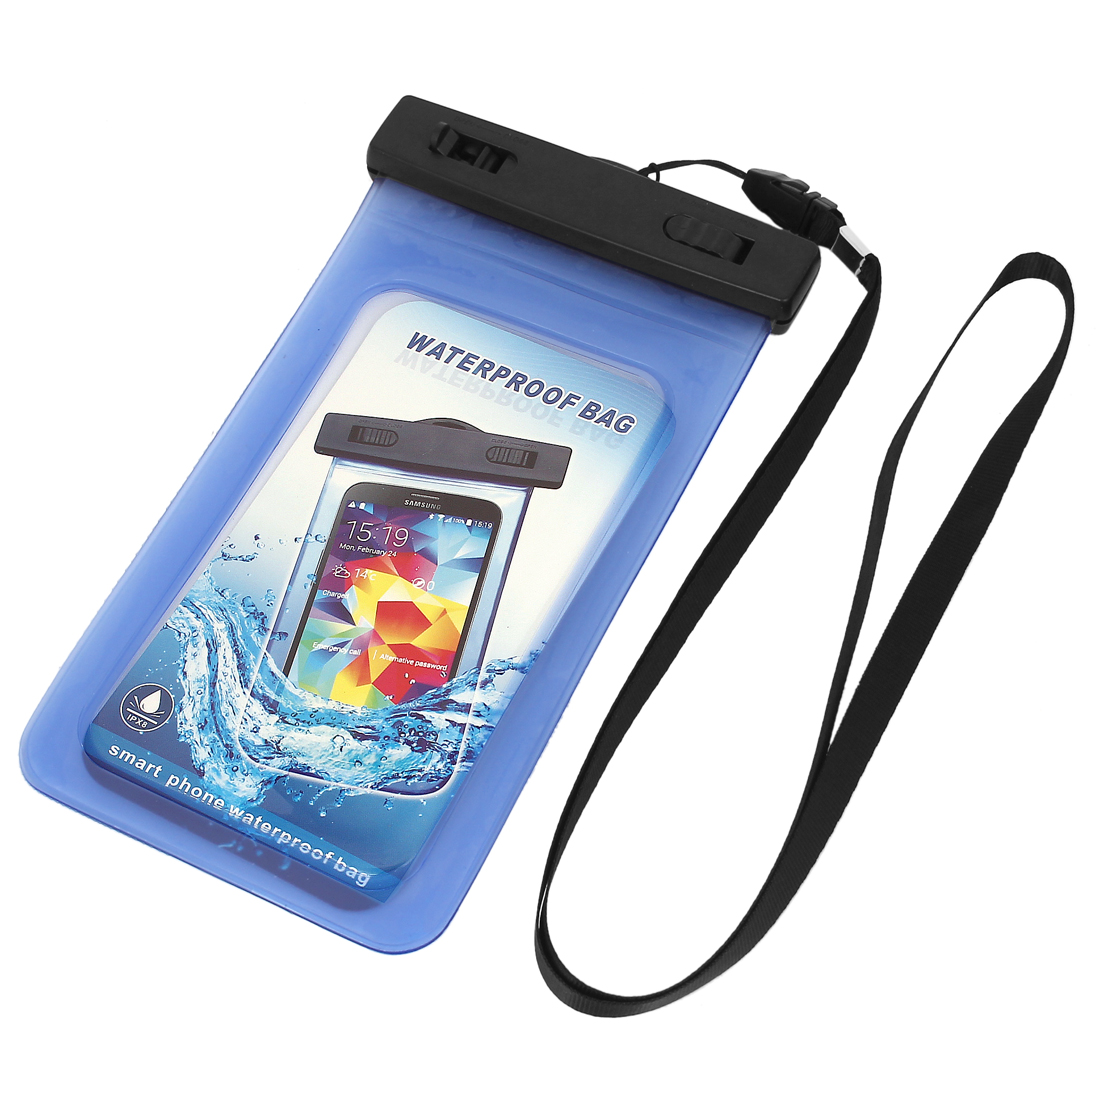 "Waterproof Bag Holder Pouch Blue for 5.5"" Mobile Phone w Neck Strap"